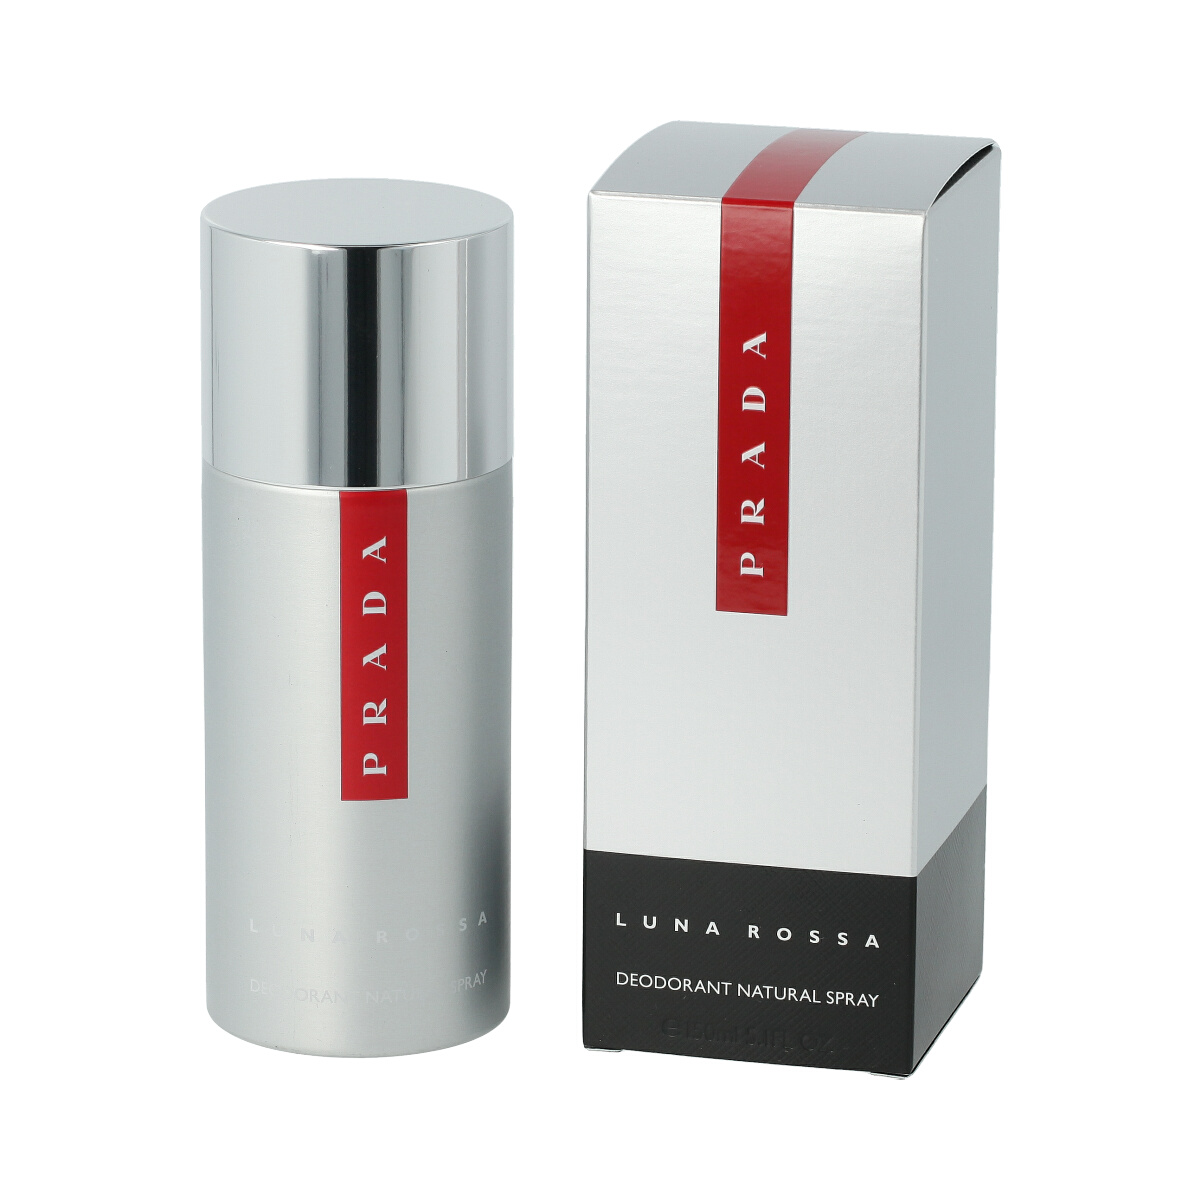 Prada Luna Rossa Deodorant im Spray 150 ml (man) 72976